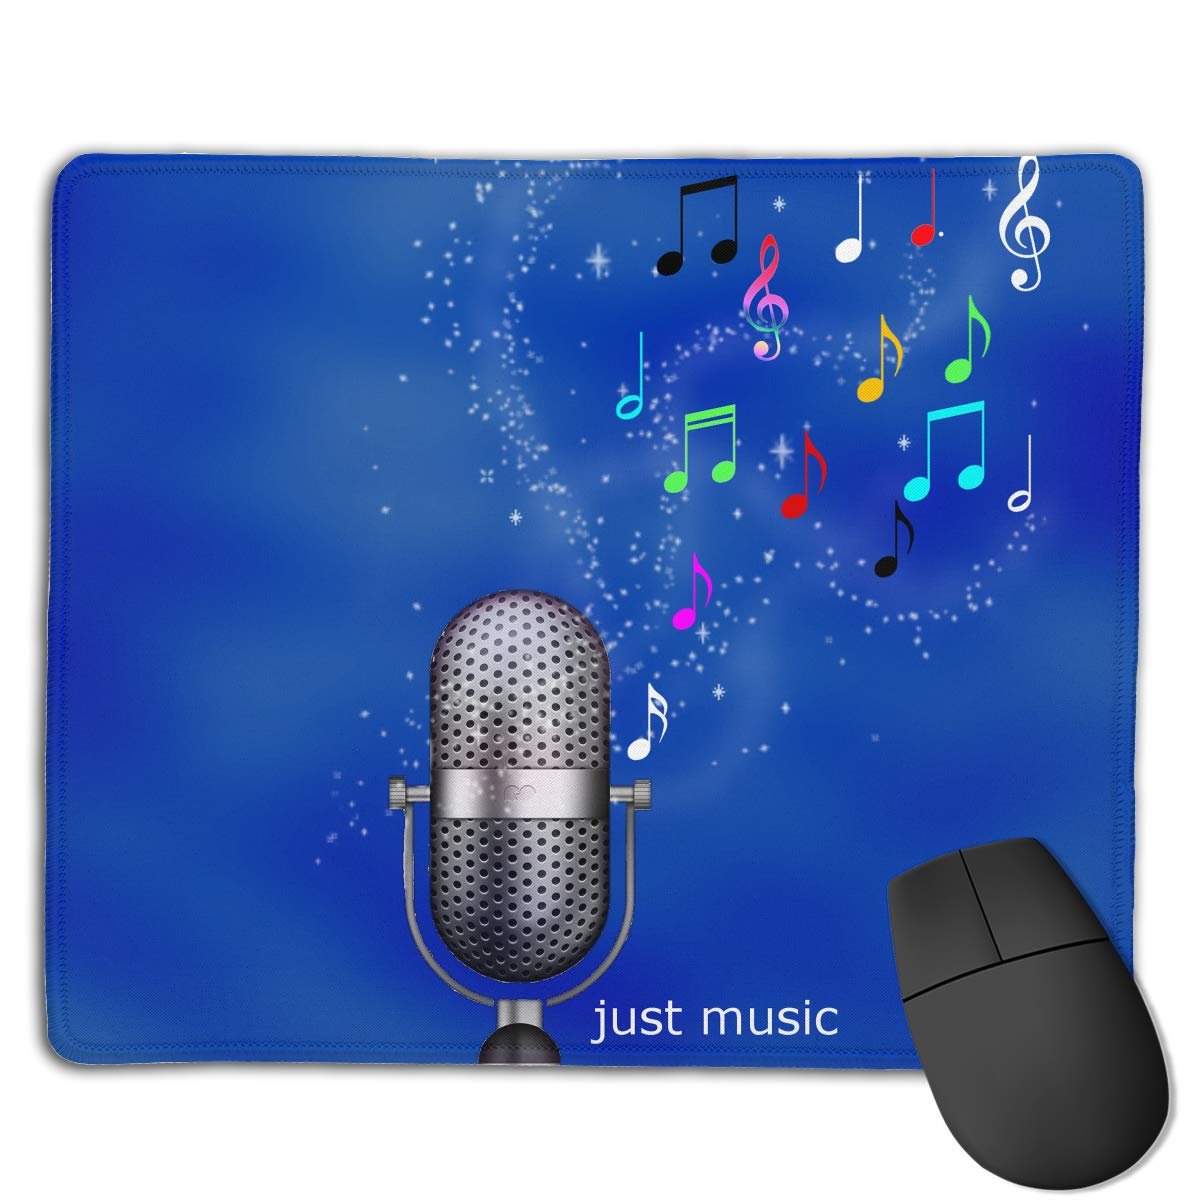 Non-Slip Mouse Pad Rubber Mousepad Music Saves-My-Soul Print Gaming Mouse Pad 18 * 22 cm yhj